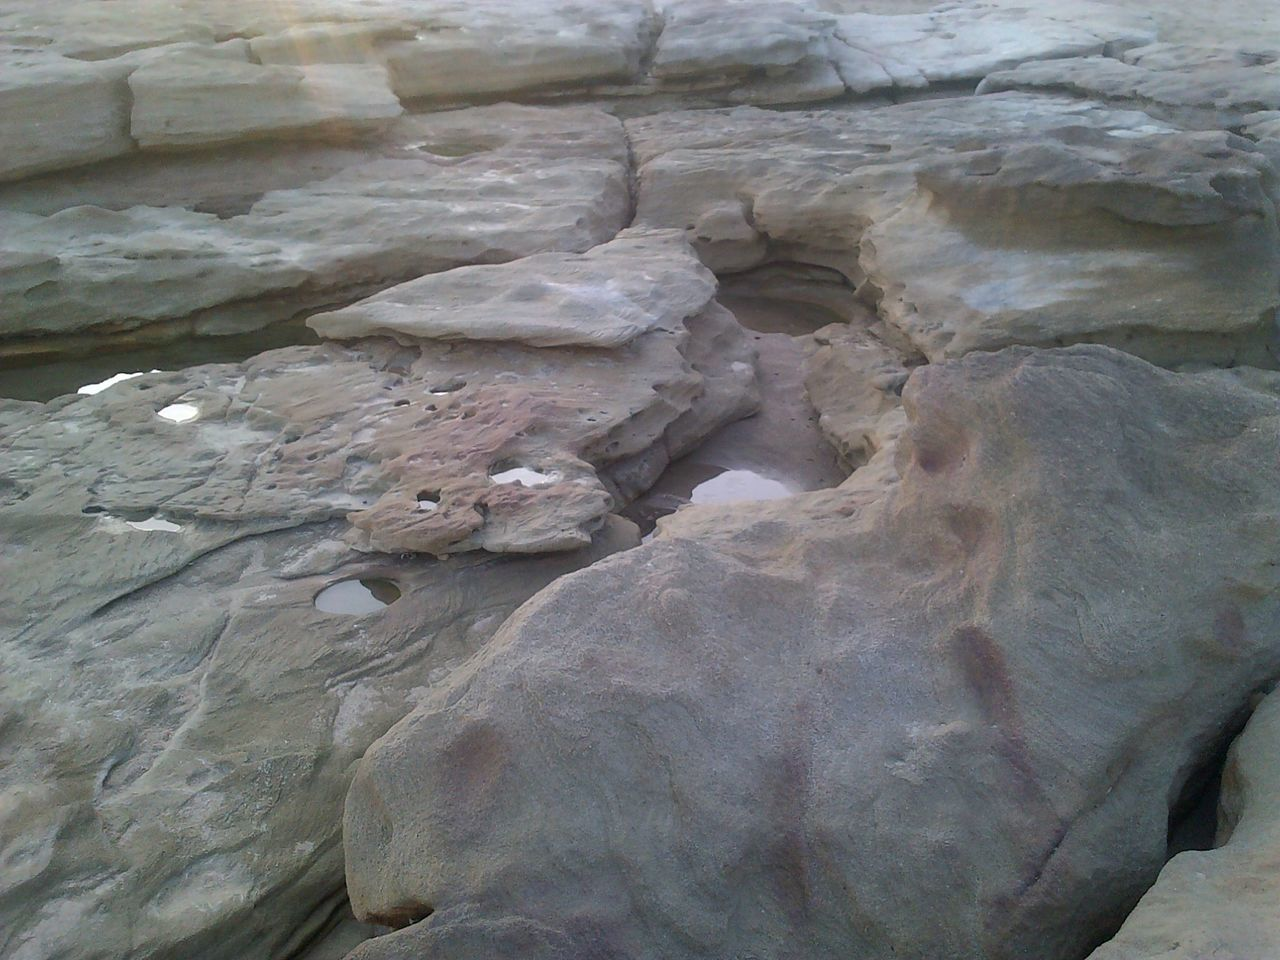 nature, outdoors, no people, rock - object, day, beauty in nature, close-up